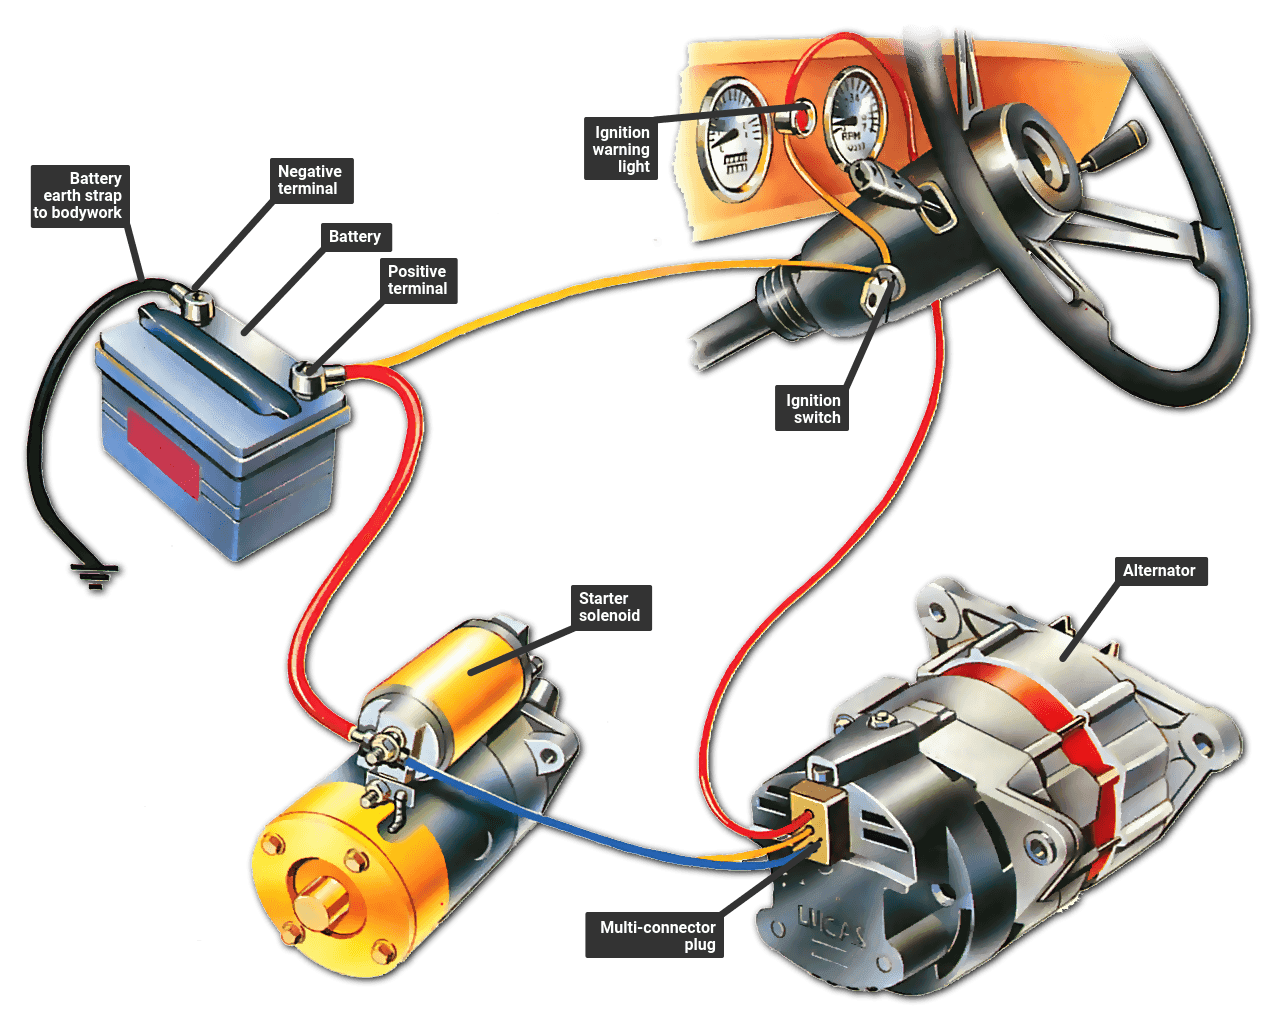 hight resolution of troubleshooting the ignition warning light how a car works 2005 club car starter generator wiring diagram car generator wiring diagram